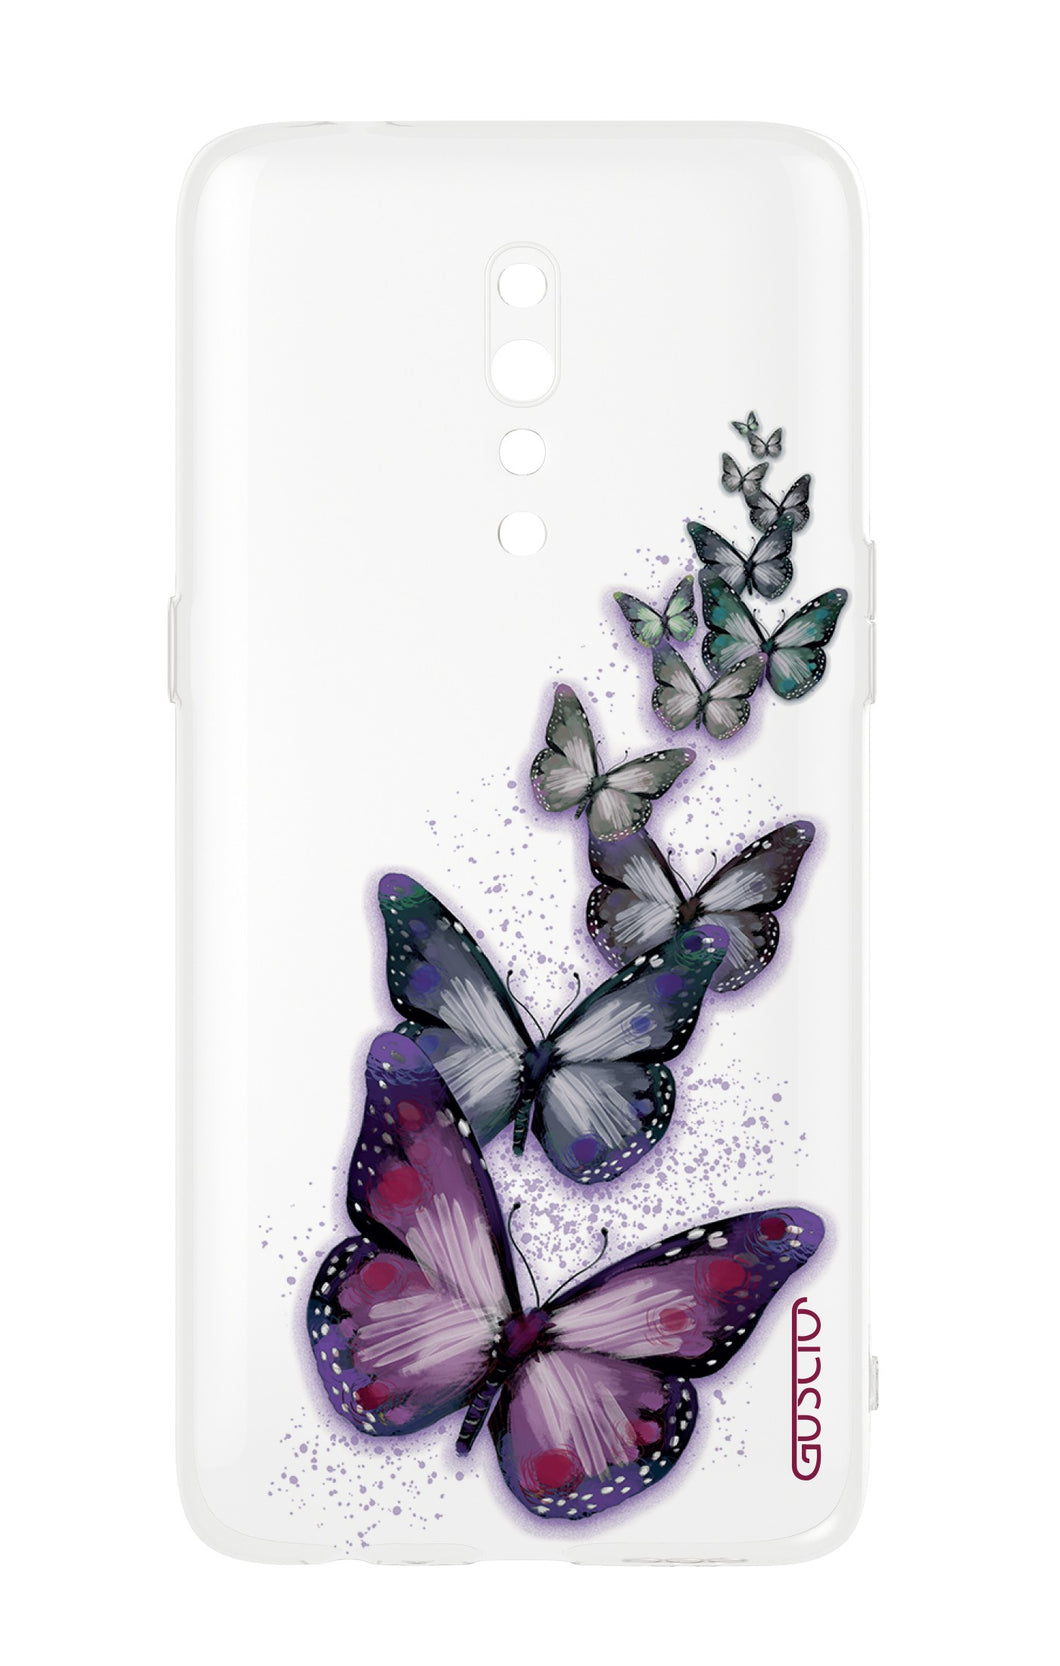 ro79d34cd cover apple iphone 8 bianca - rodrigoayub.com